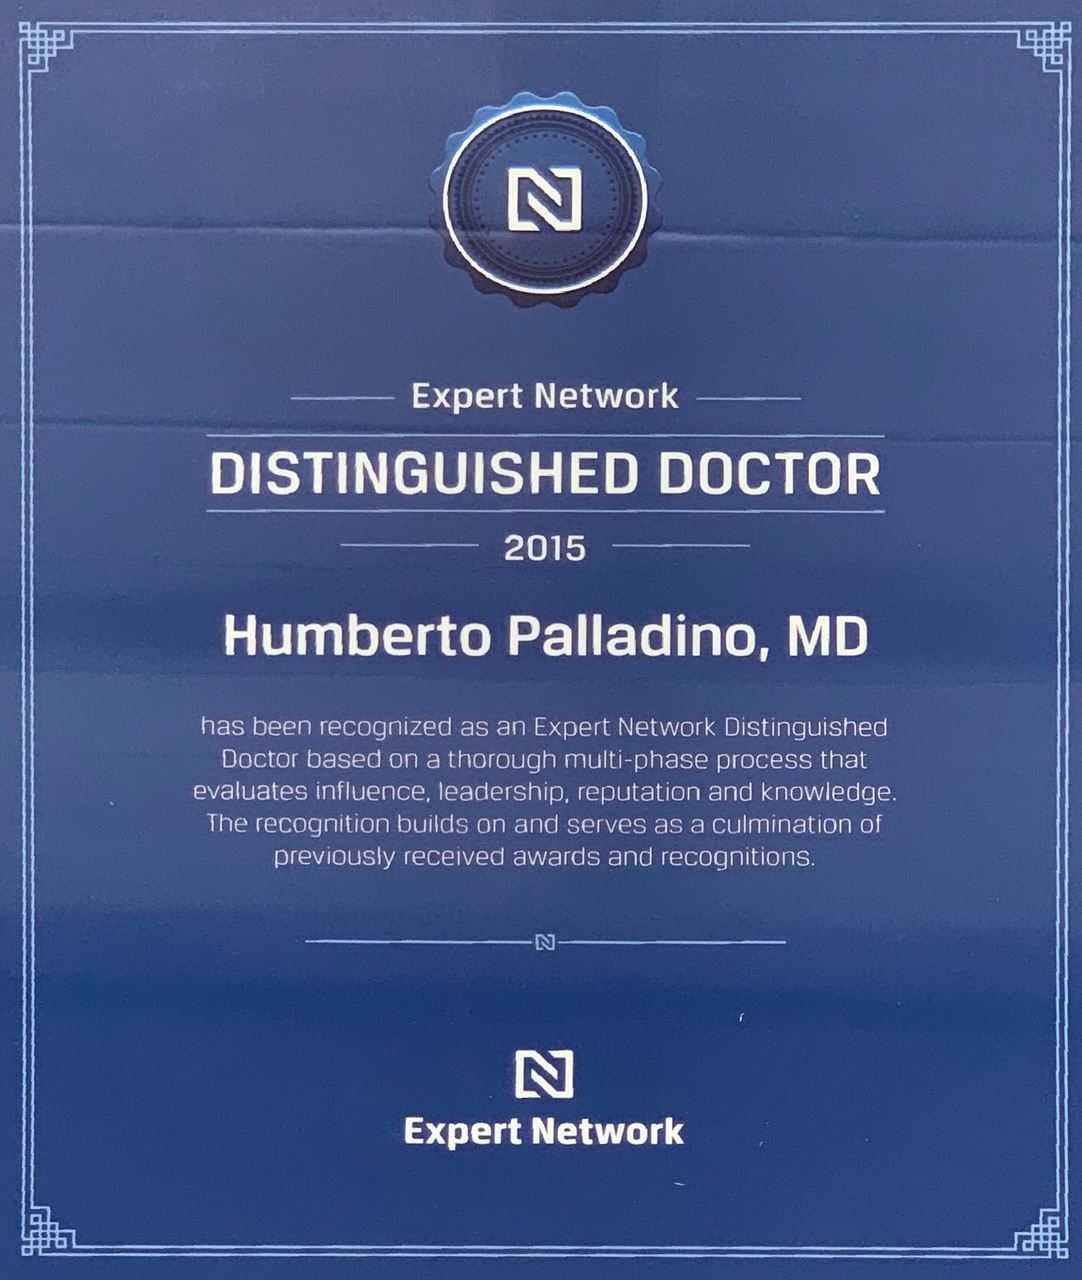 Expert Network Distinction